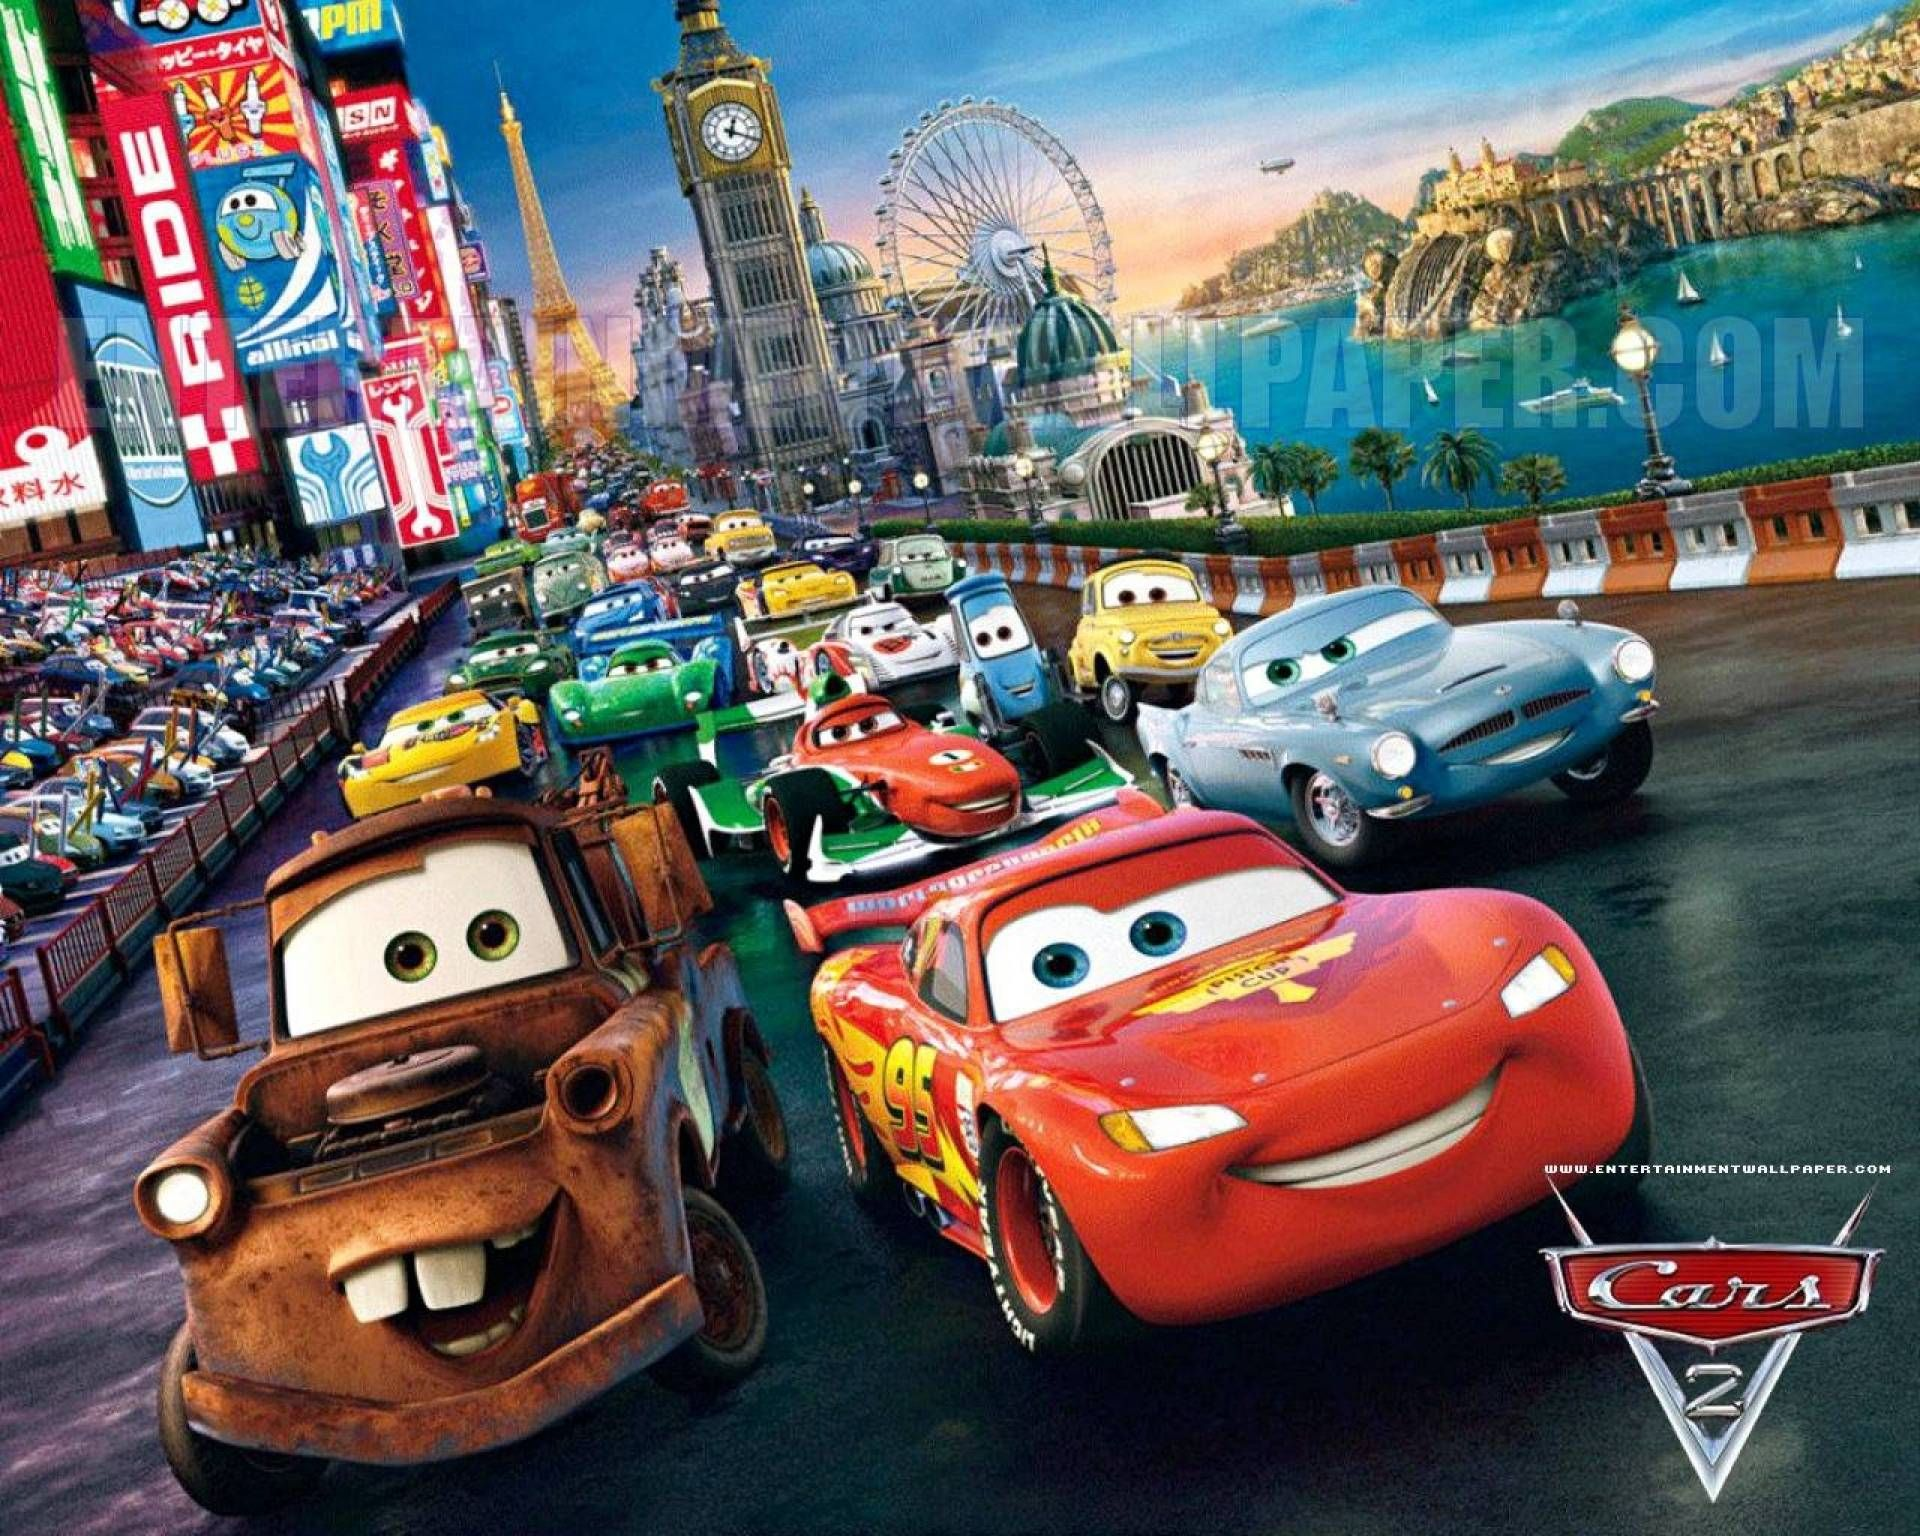 1920x1536 - Wallpaper Cars Cartoon 20